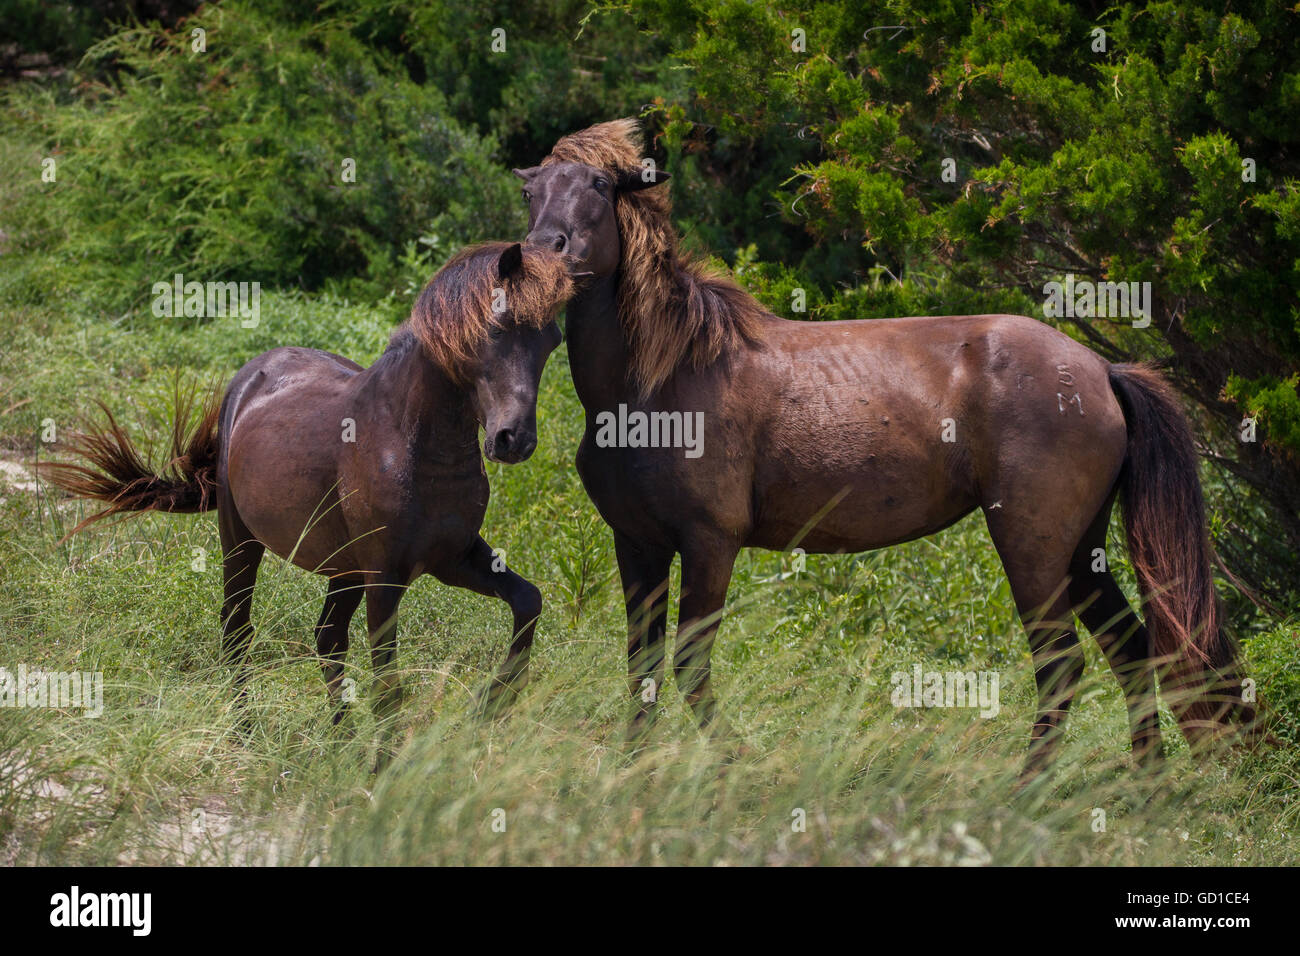 A stallion being playful with one of his mares. - Stock Image